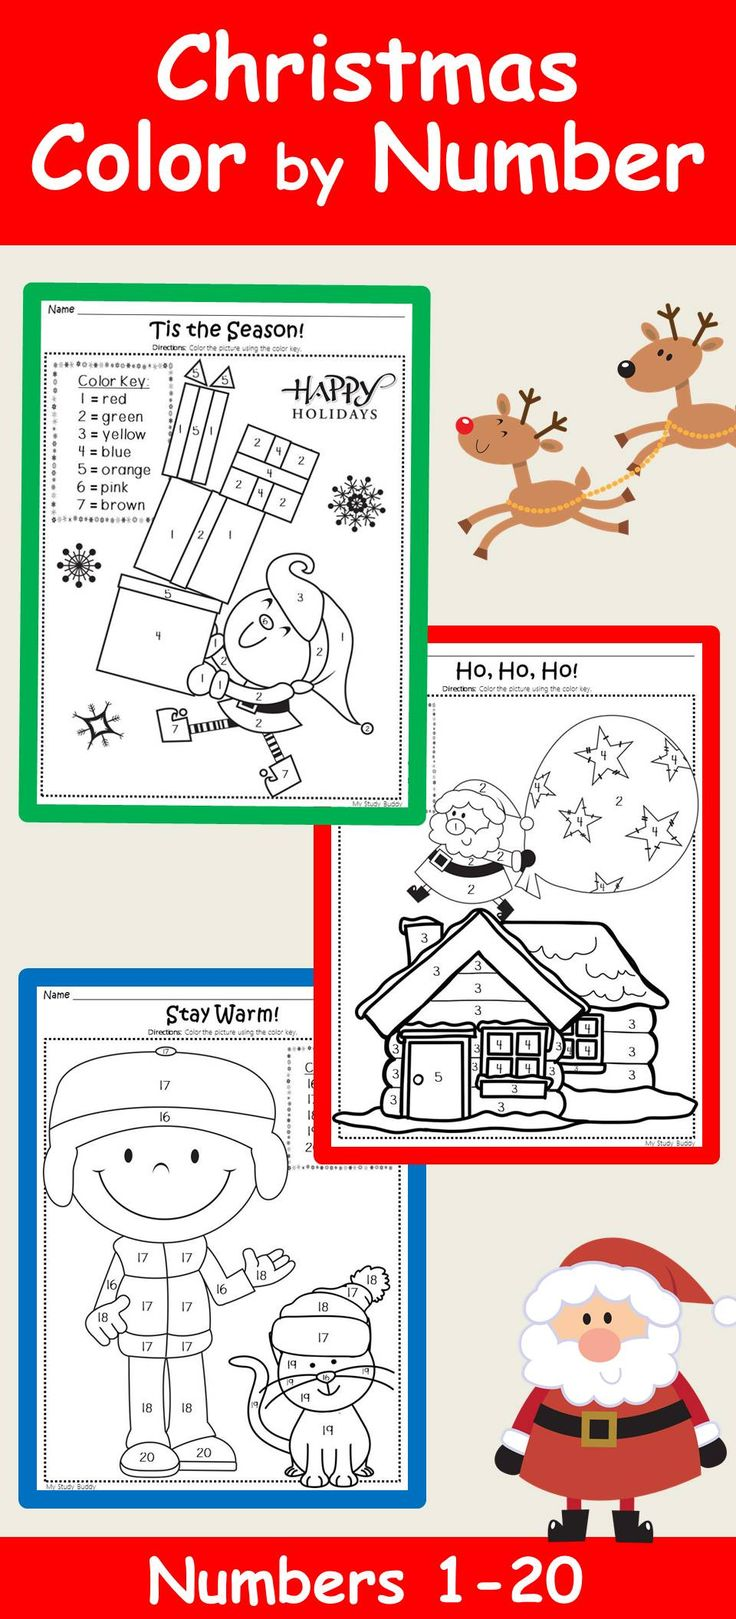 Your students will enjoy these Christmas coloring pages! The sheets all have a Christmas/winter theme and are a fun way for students to practice number recognition and color words. All printables require NO PREP and can be used for morning work, centers, when students finish their work early or anytime you need a fun sheet in the weeks leading up to the holiday break!